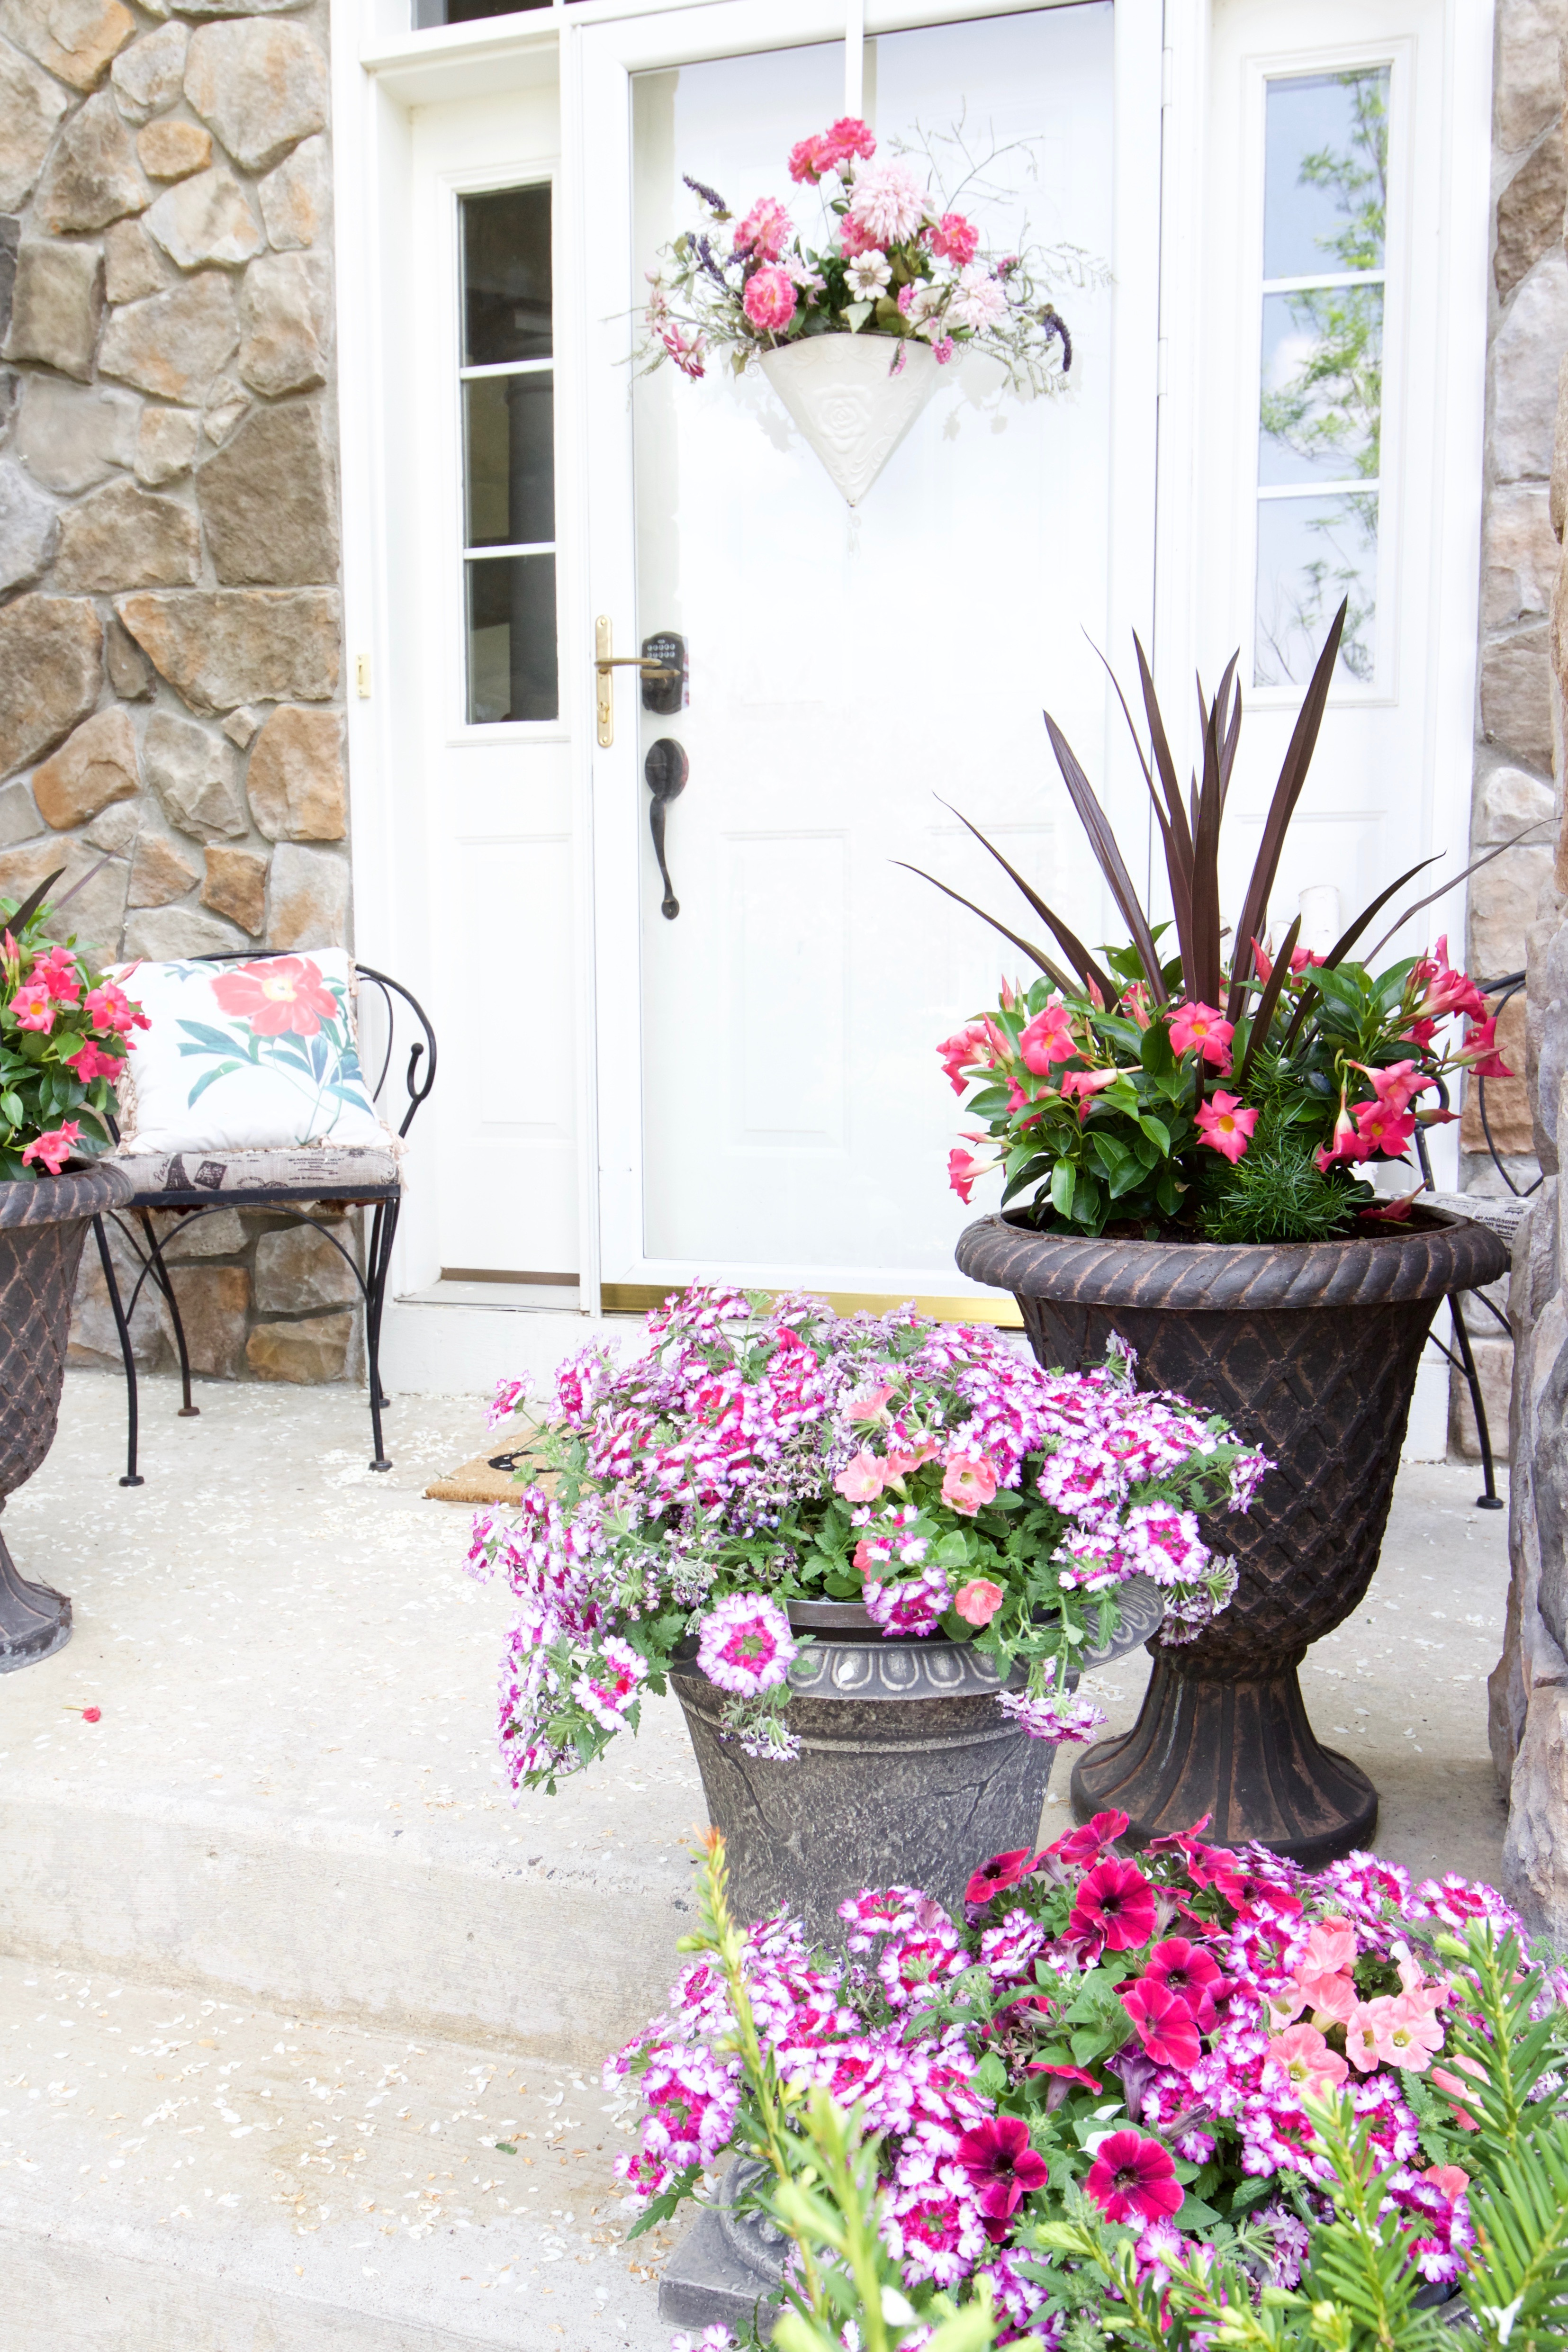 Decorating With Potted Flowers On The Front Porch A Gardening And